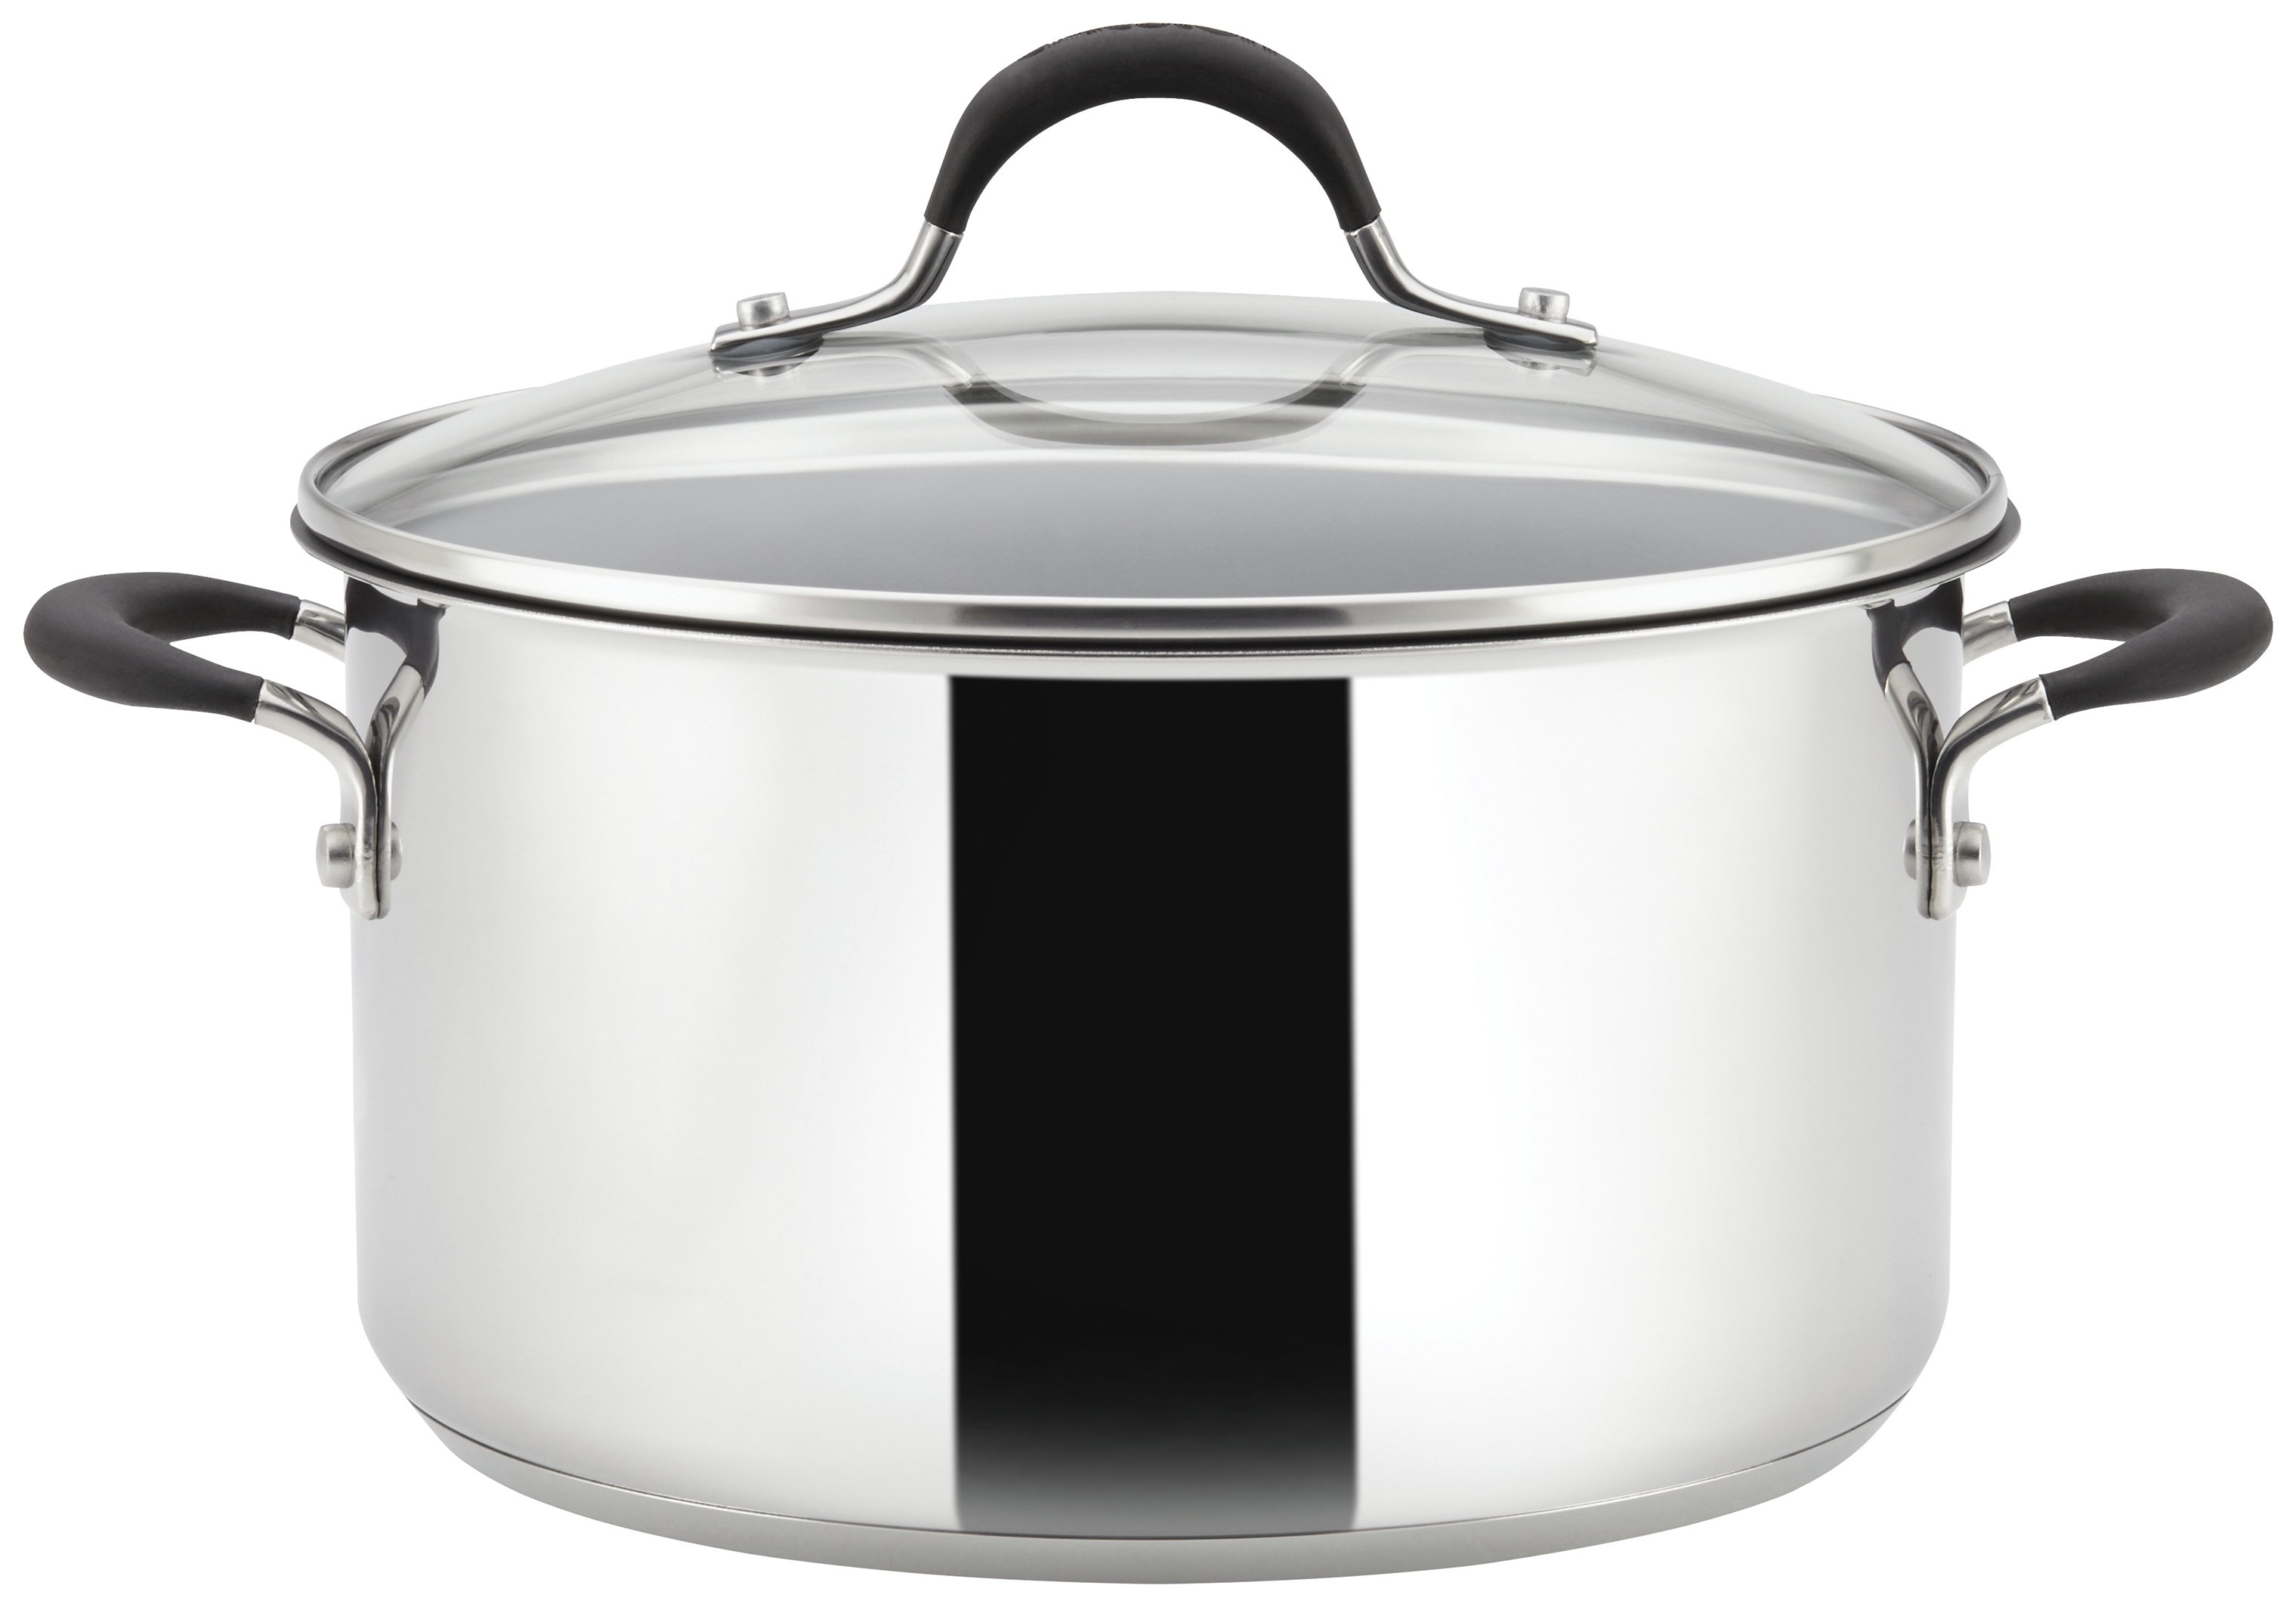 Image of Circulon Momentum 24cm Non-Stick Covered Stock Pot